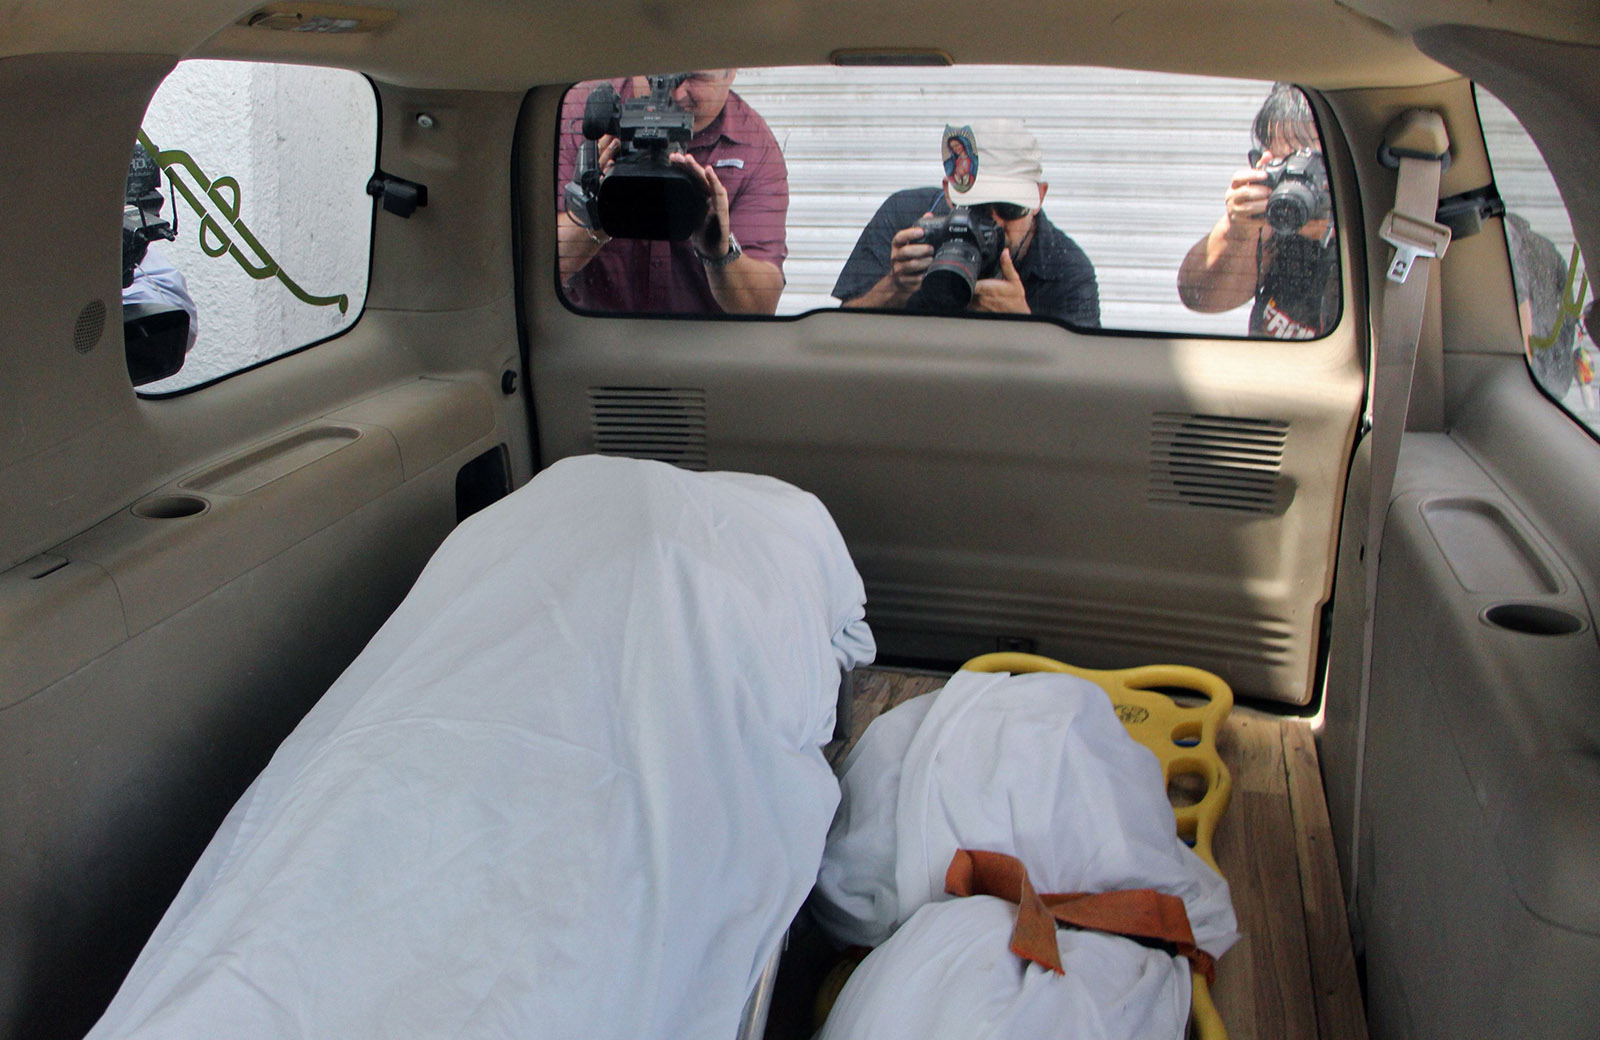 The recovered bodies of Óscar Alberto Martínez Ramírez and his daughter Valeria, who drowned crossing the Rio Grande, being transported to the forensic service in Matamoros, Mexico, June 26, 2019